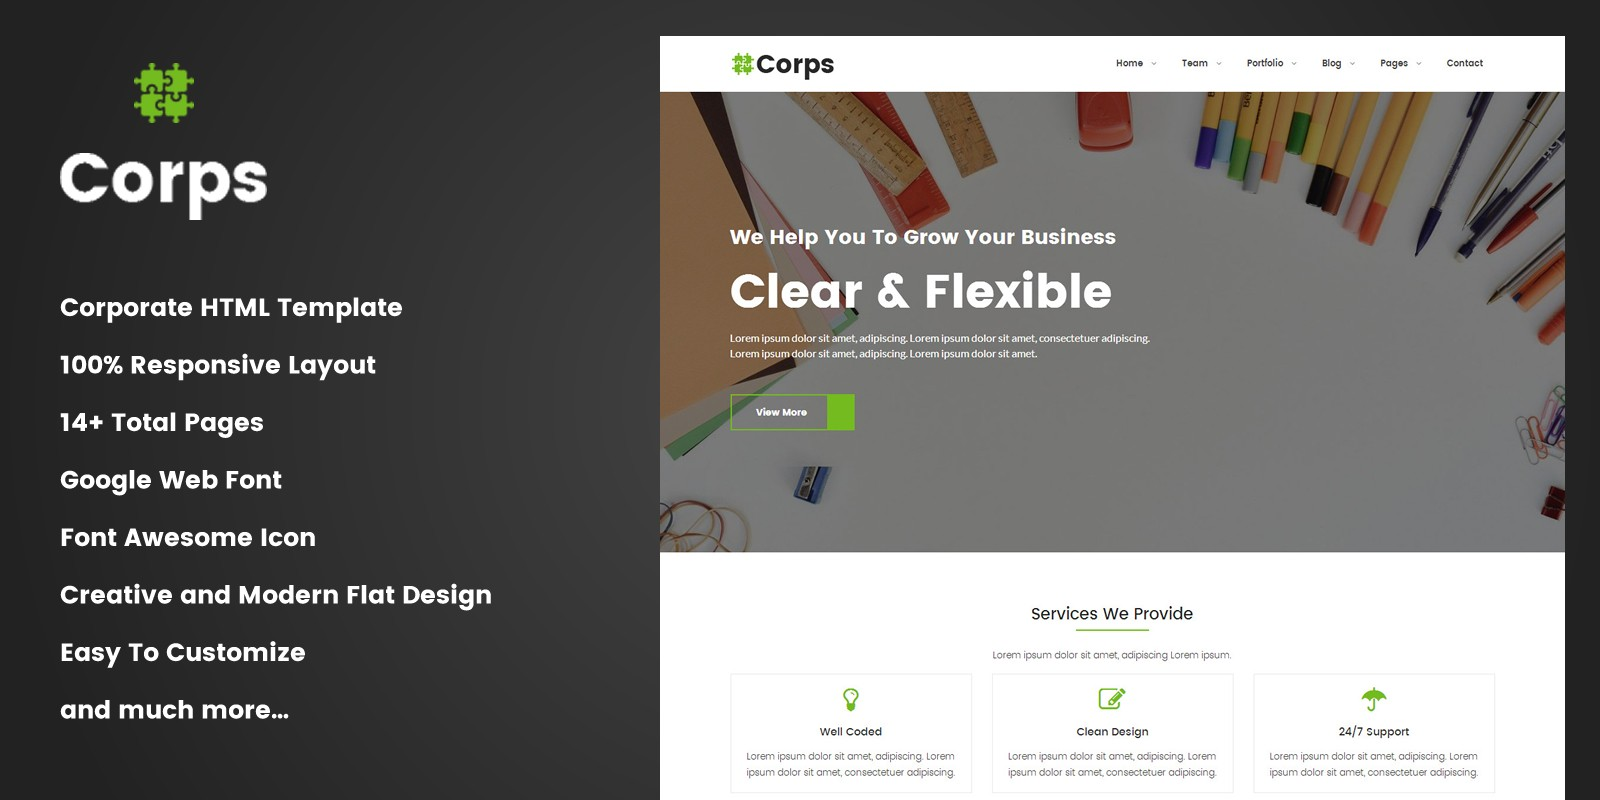 Corps - Corporate Business HTML Template - Business HTML Website ...